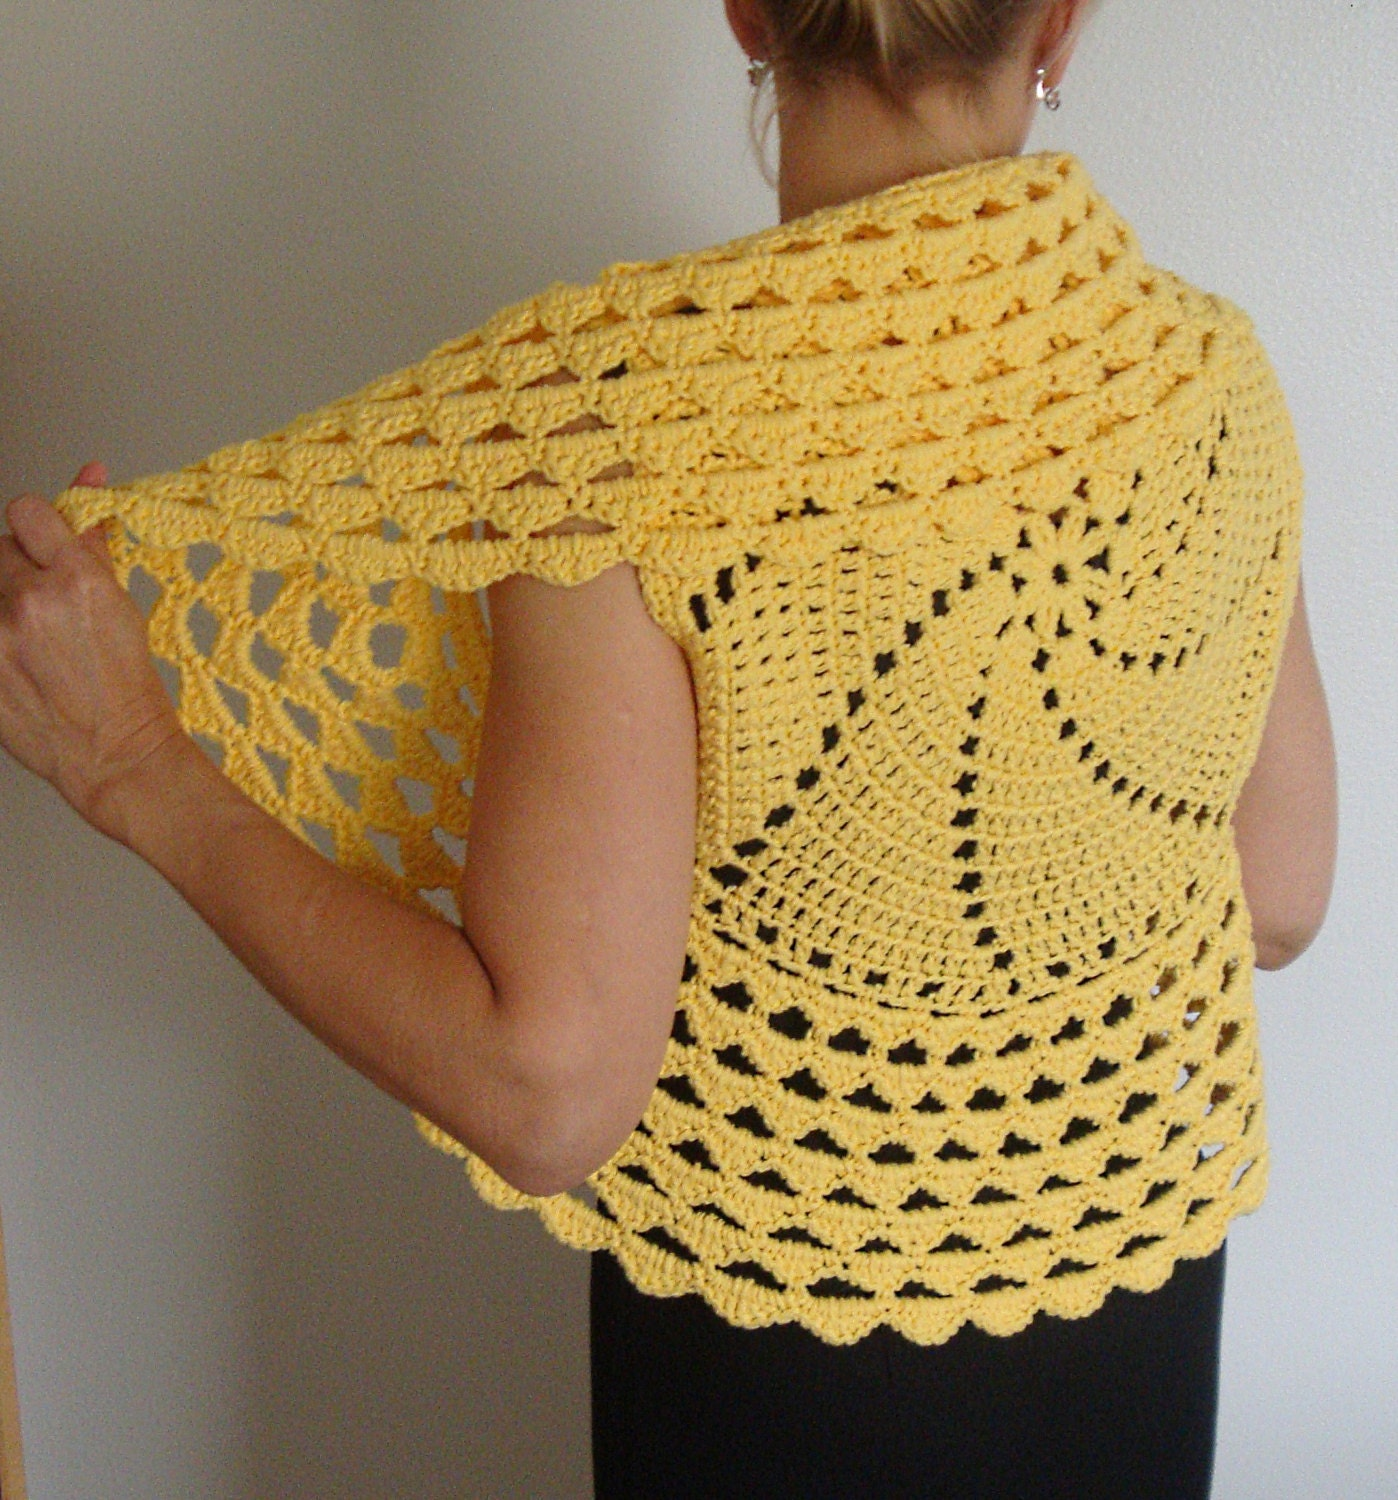 Crochet Patterns Circle : Crochet Pattern Circle Vest / Shrug PDF Digital Crochet